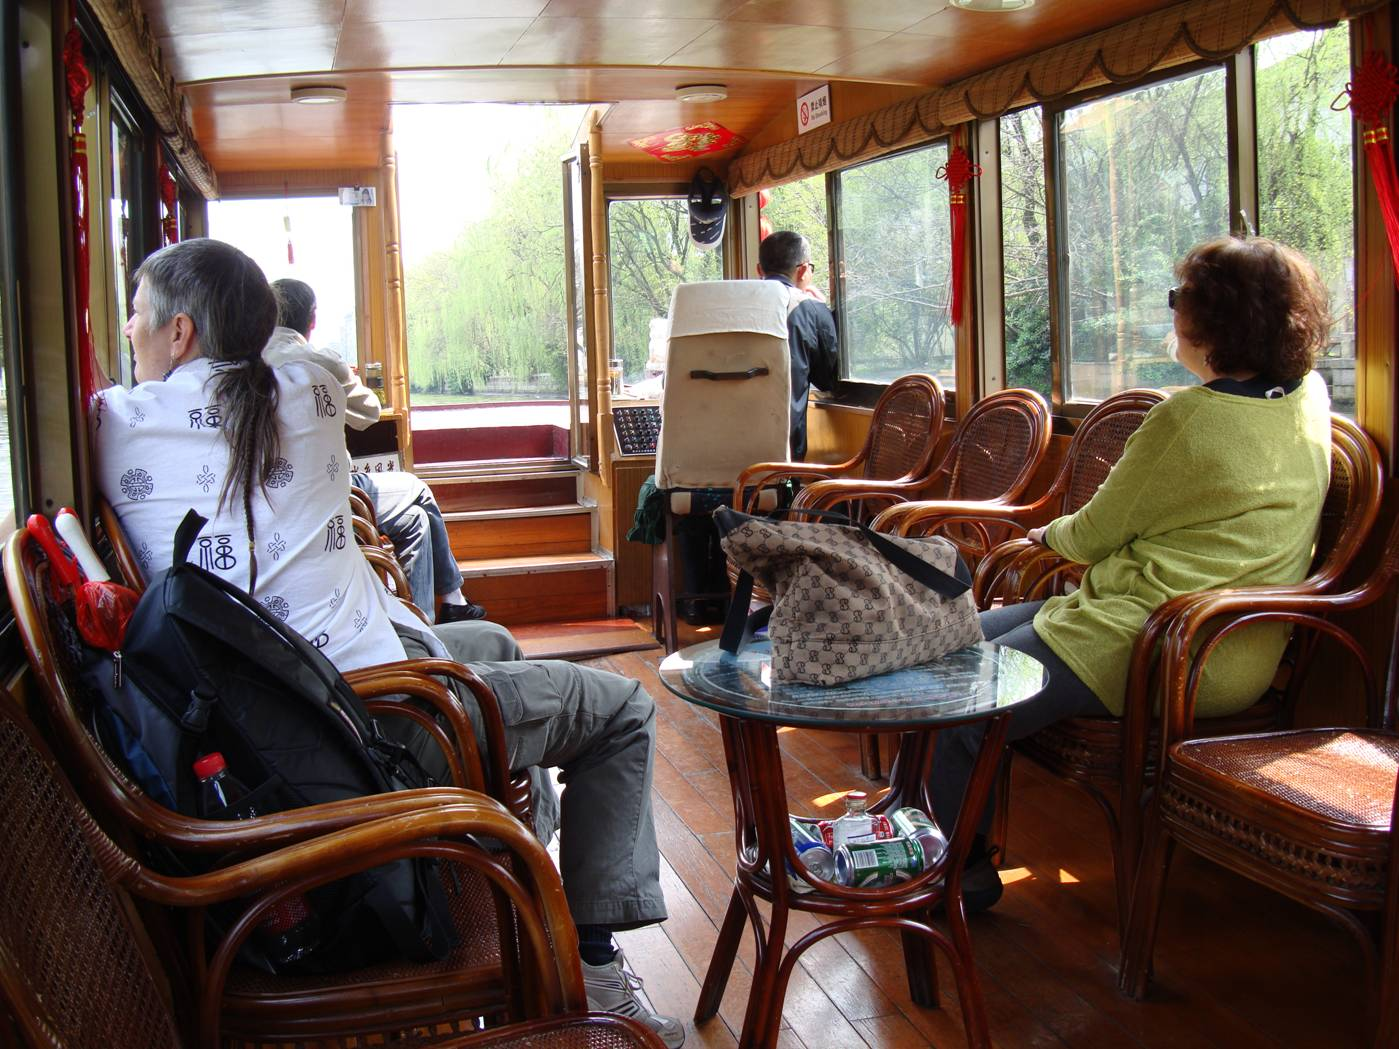 Picture:  Ruth and Elaine on board the canal tour boat, Suzhou, China